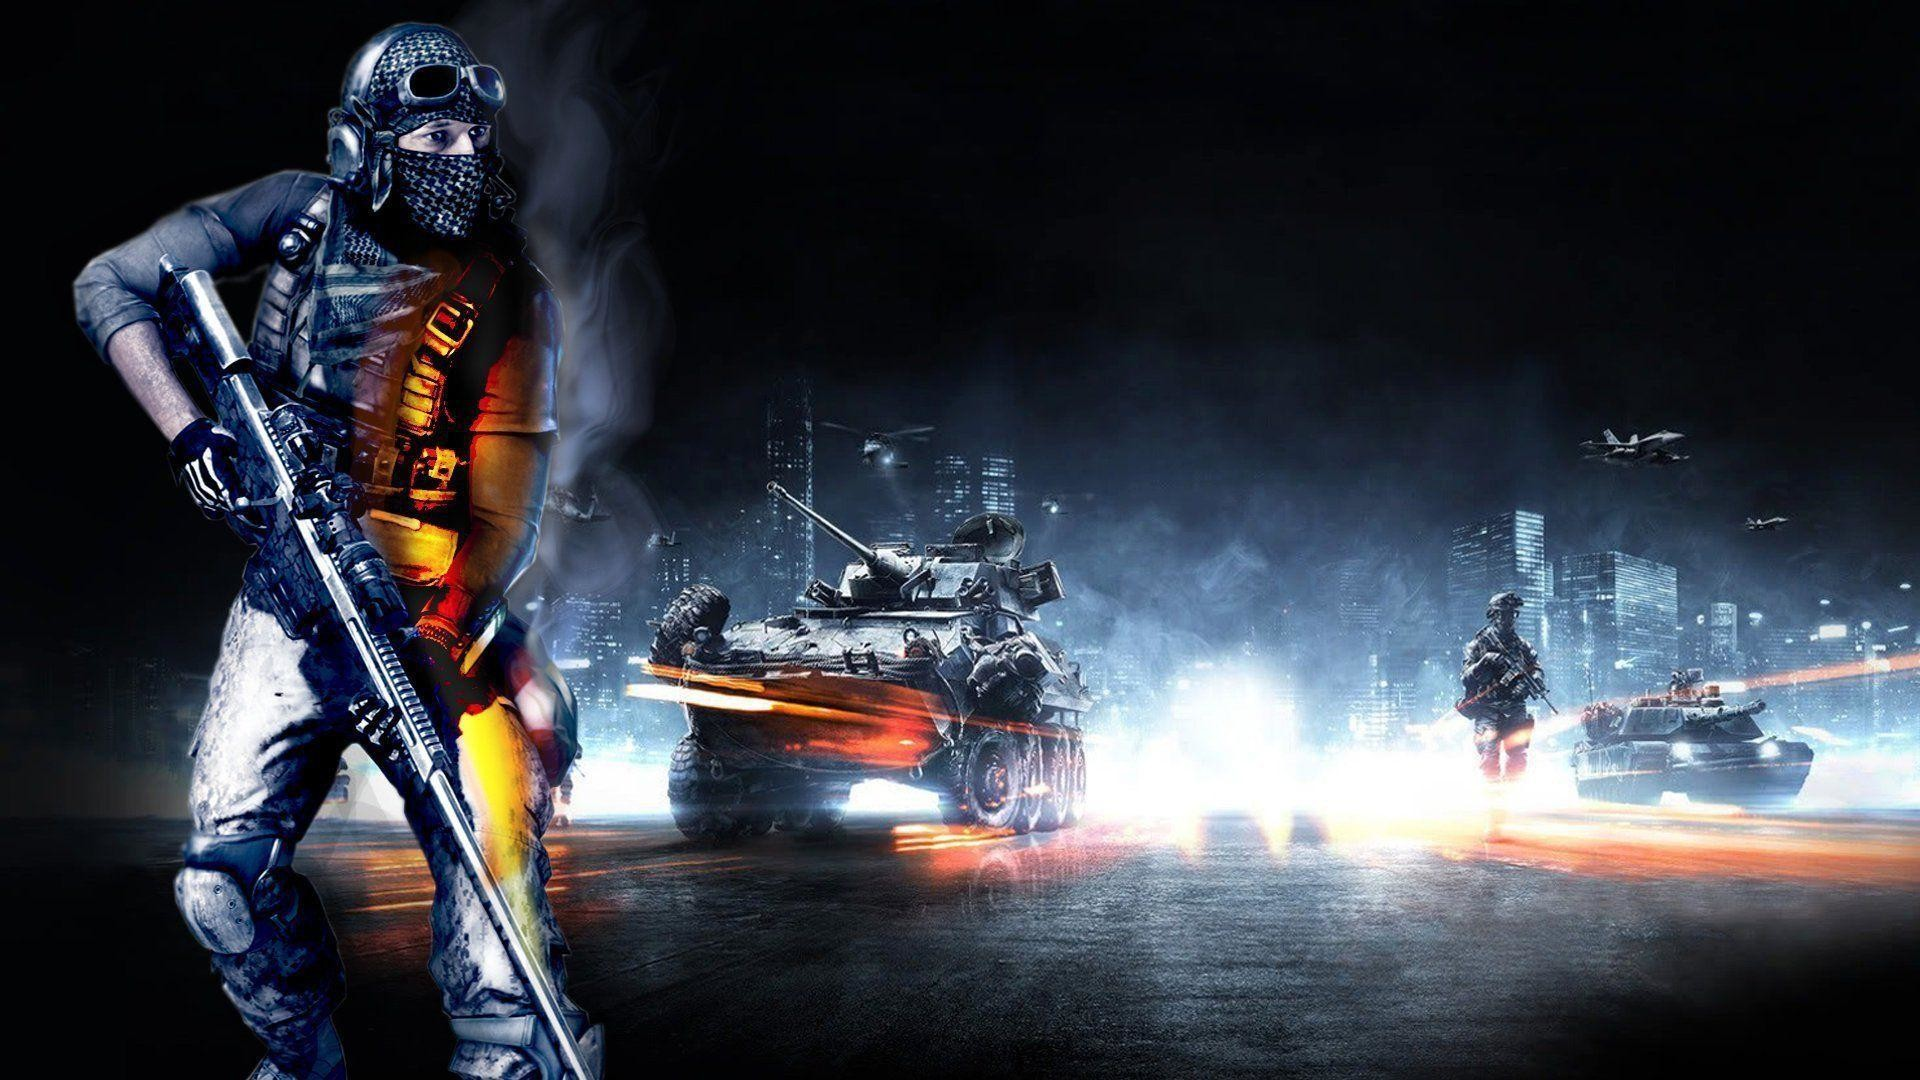 Res: 1920x1080, Wallpapers For > Battlefield 3 Wallpaper Hd 1080p